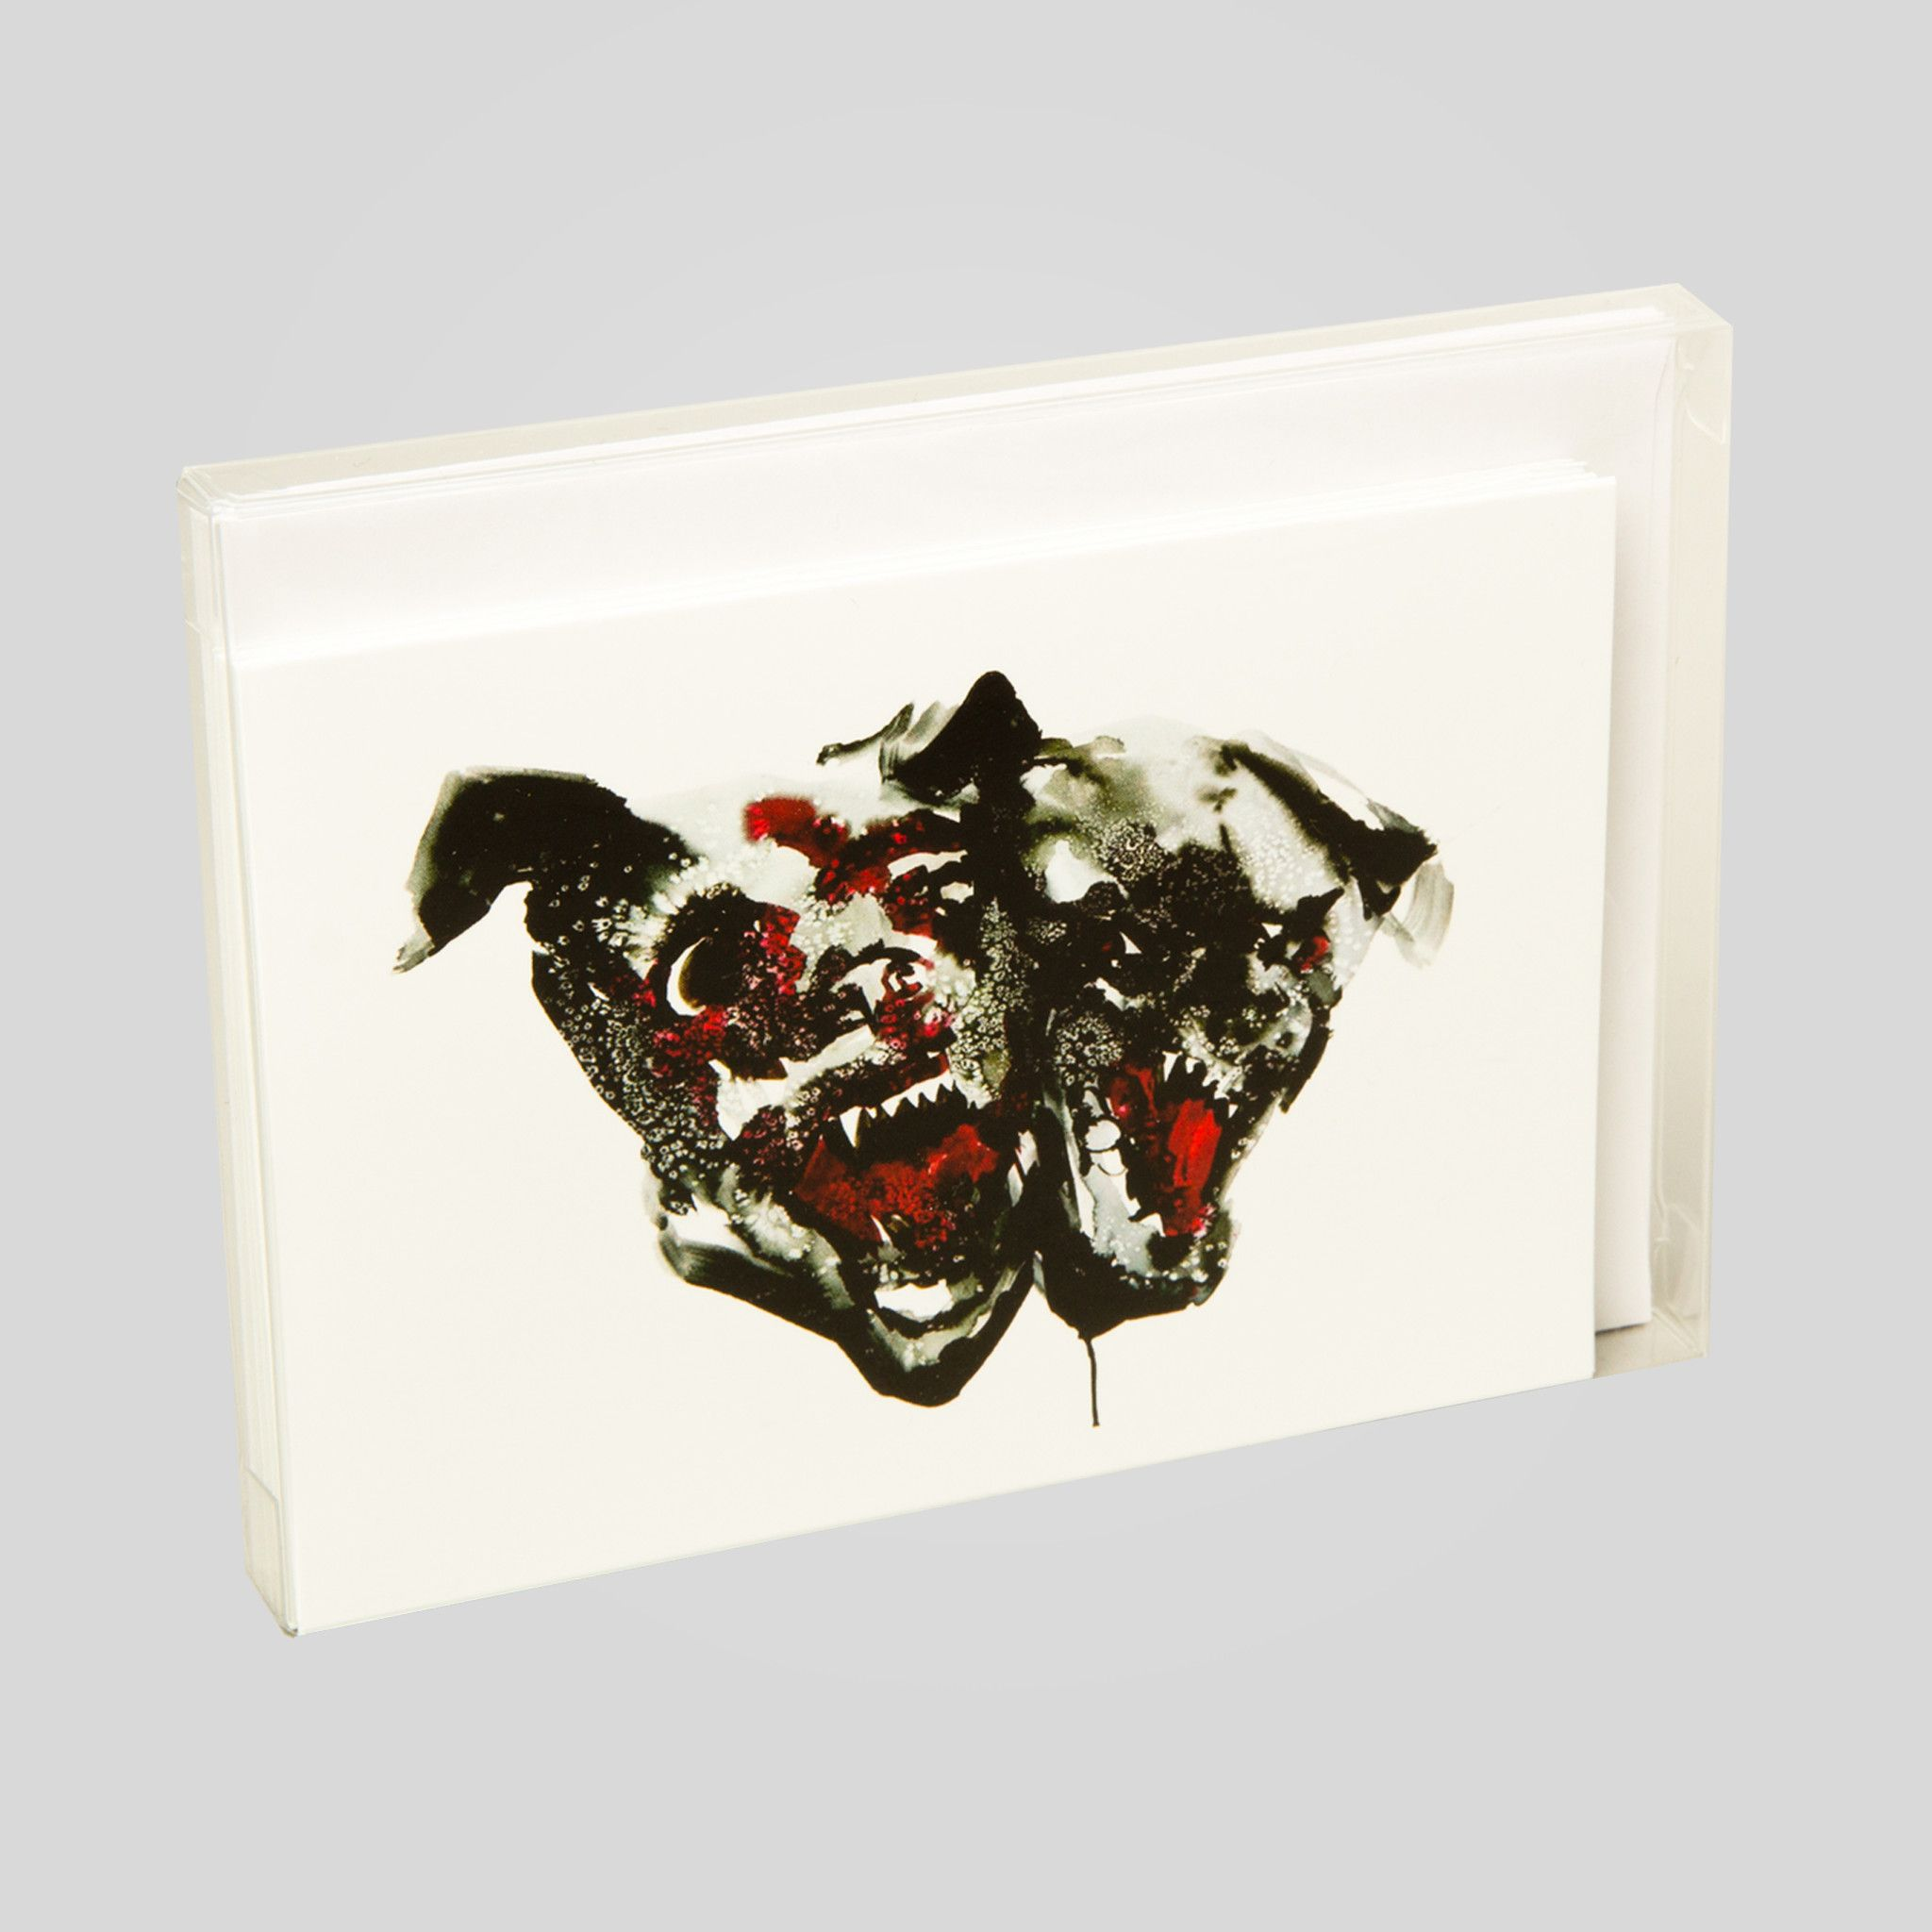 Assorted greeting card pack 1425 x 6 15pt velvet cover 5 blank assorted greeting card pack 1 by david choe kristyandbryce Image collections